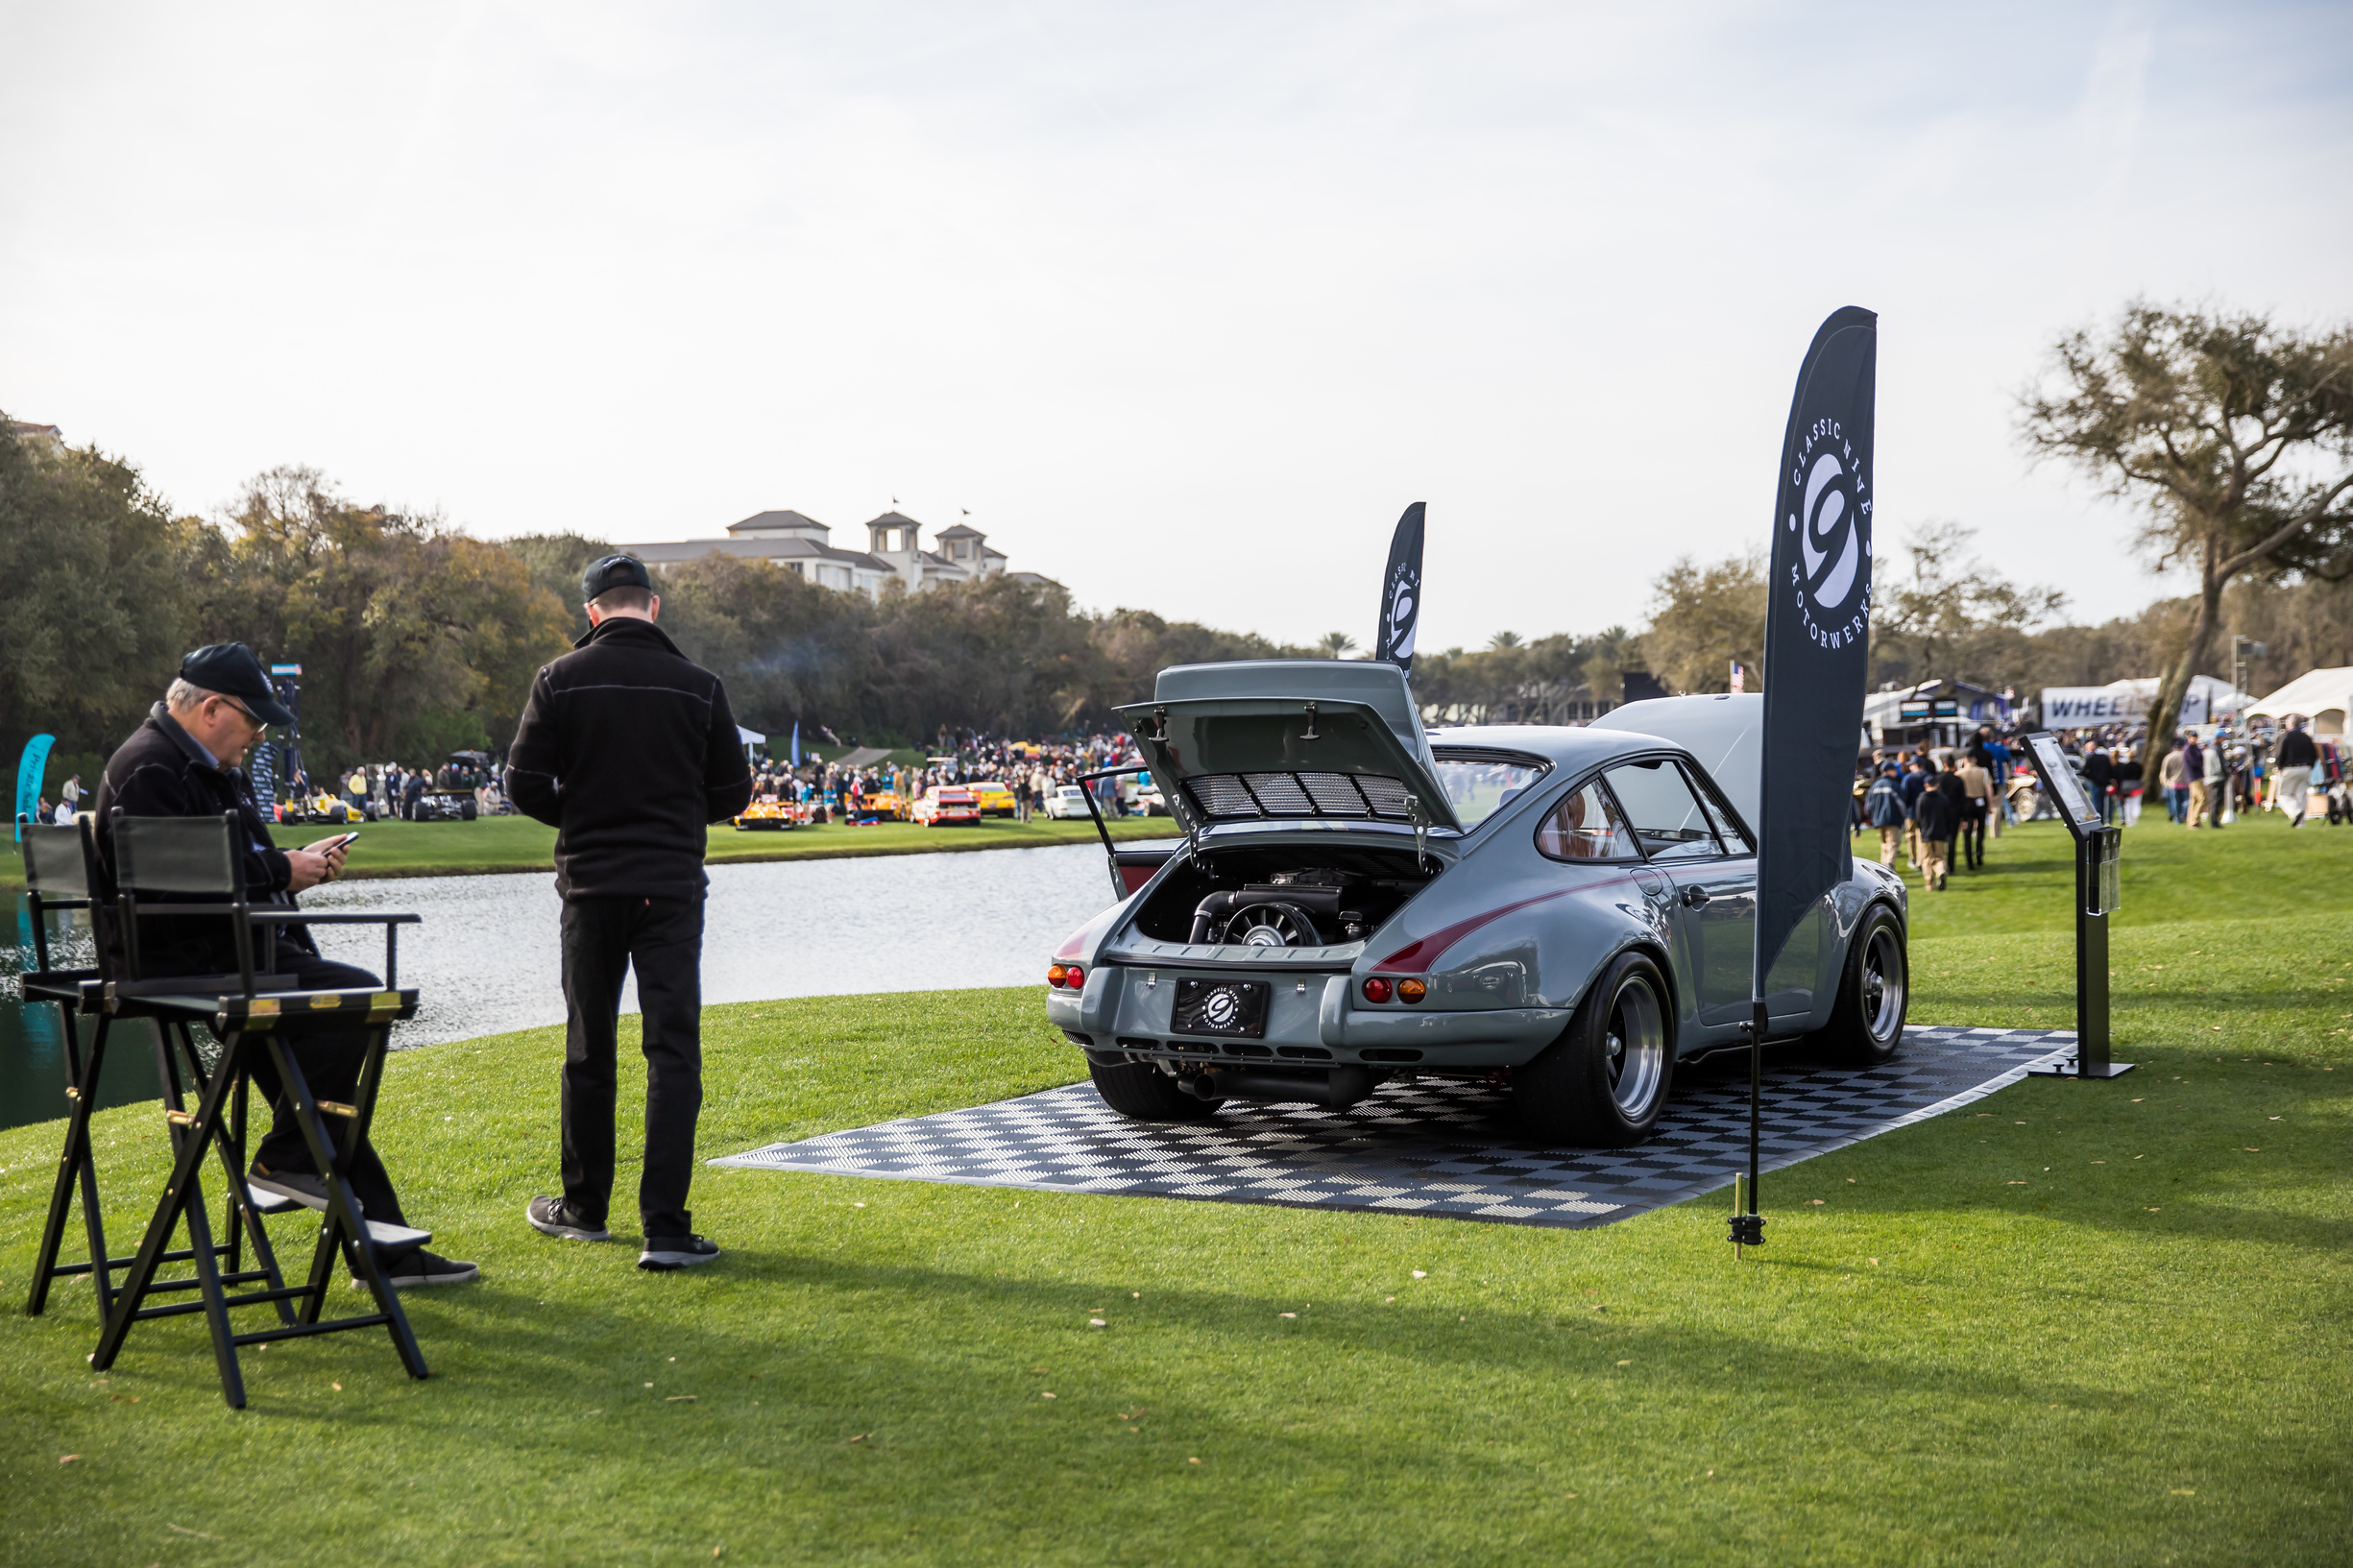 The C9 911 RS Turbo debuts at the Amelia Island Concours d'Elegance.